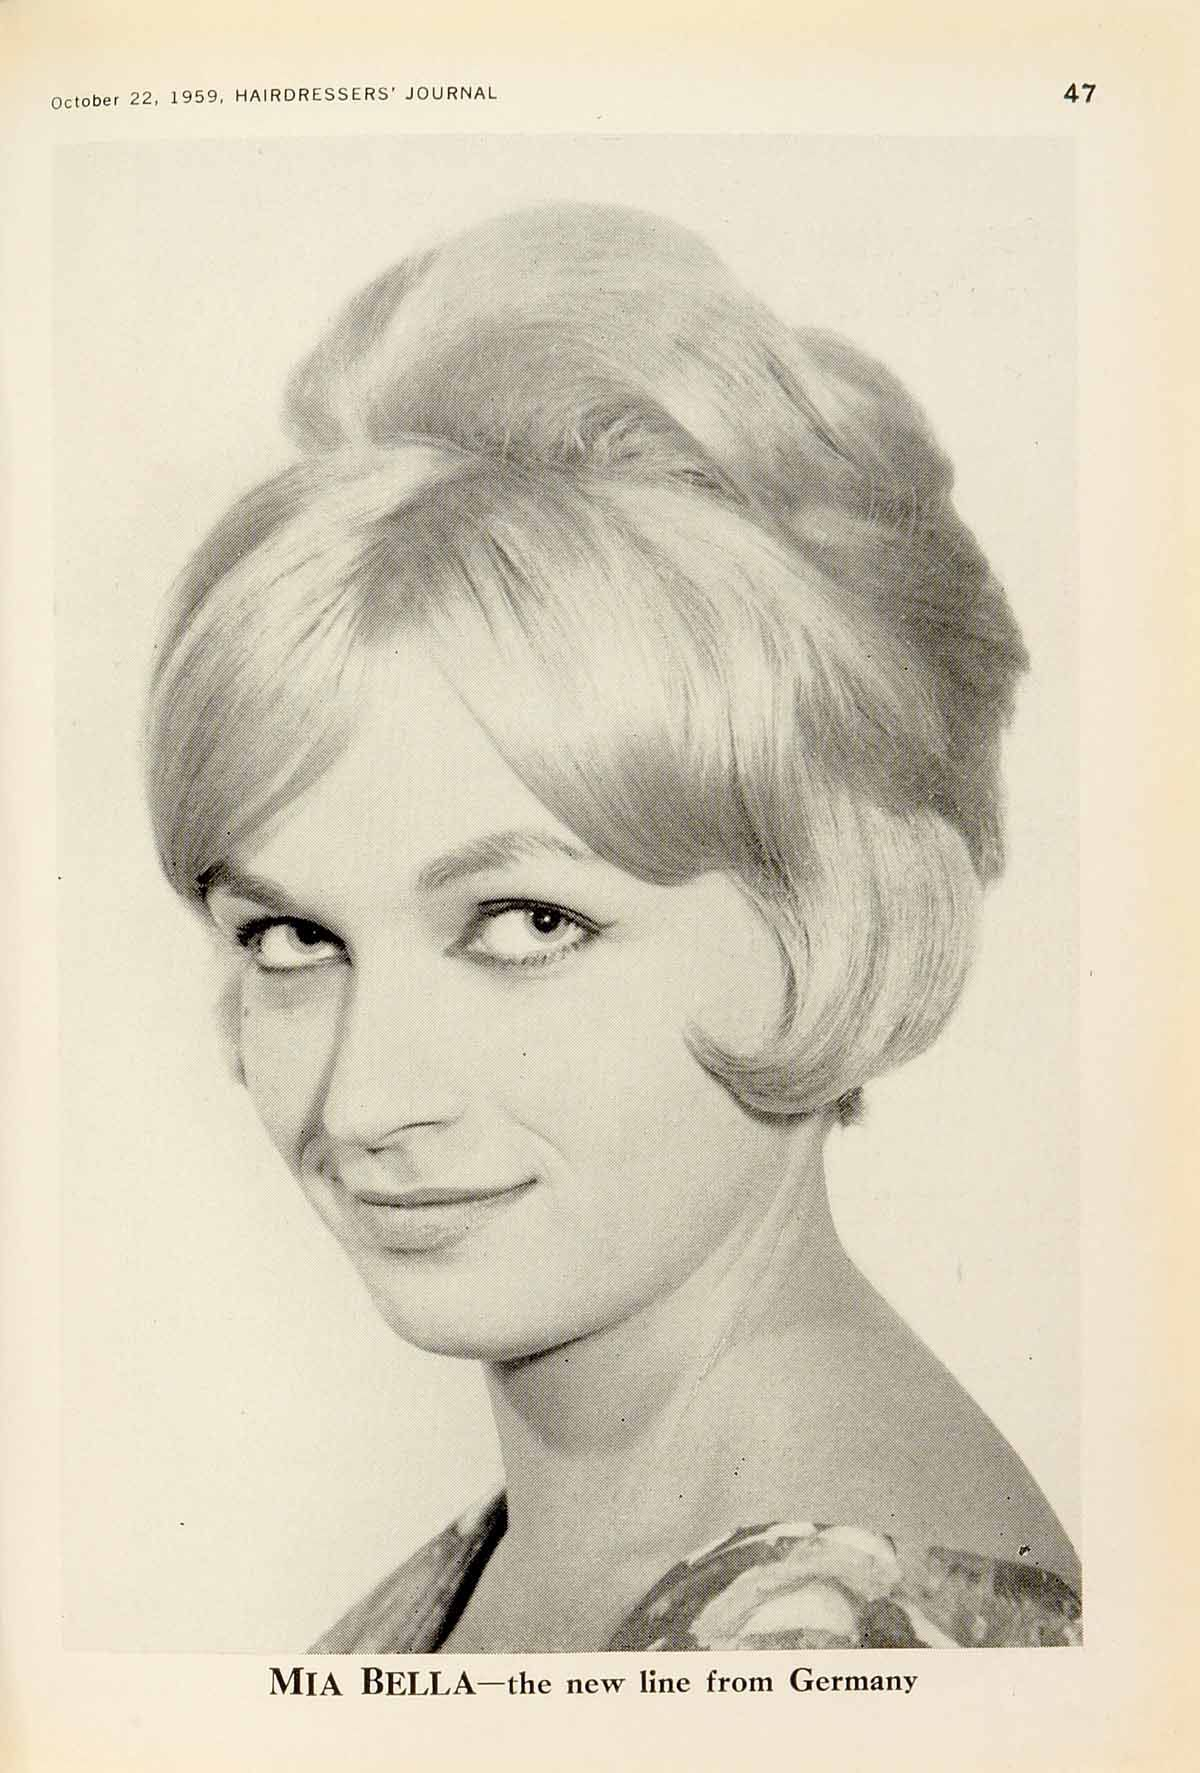 1950's HAIRSTYLES | 1950s - fashion from HJ - Hairdressing ...